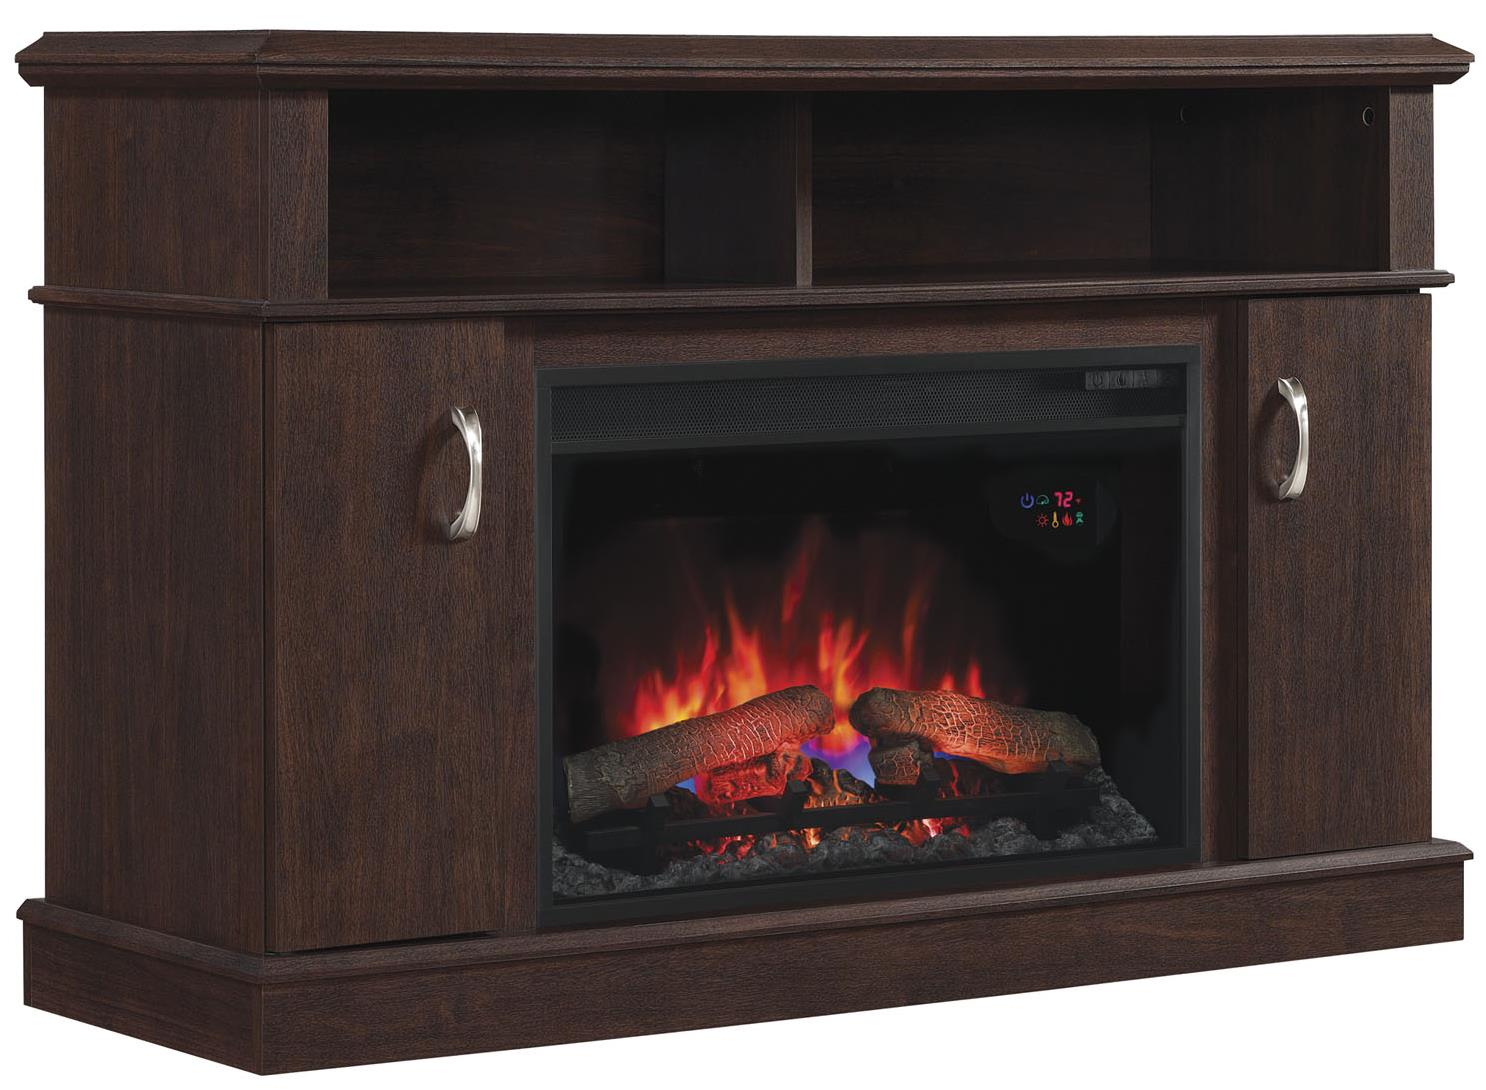 "ClassicFlame Dwell 26"" Media Fireplace Mantel - Item Number: 26MM5516-PC72"